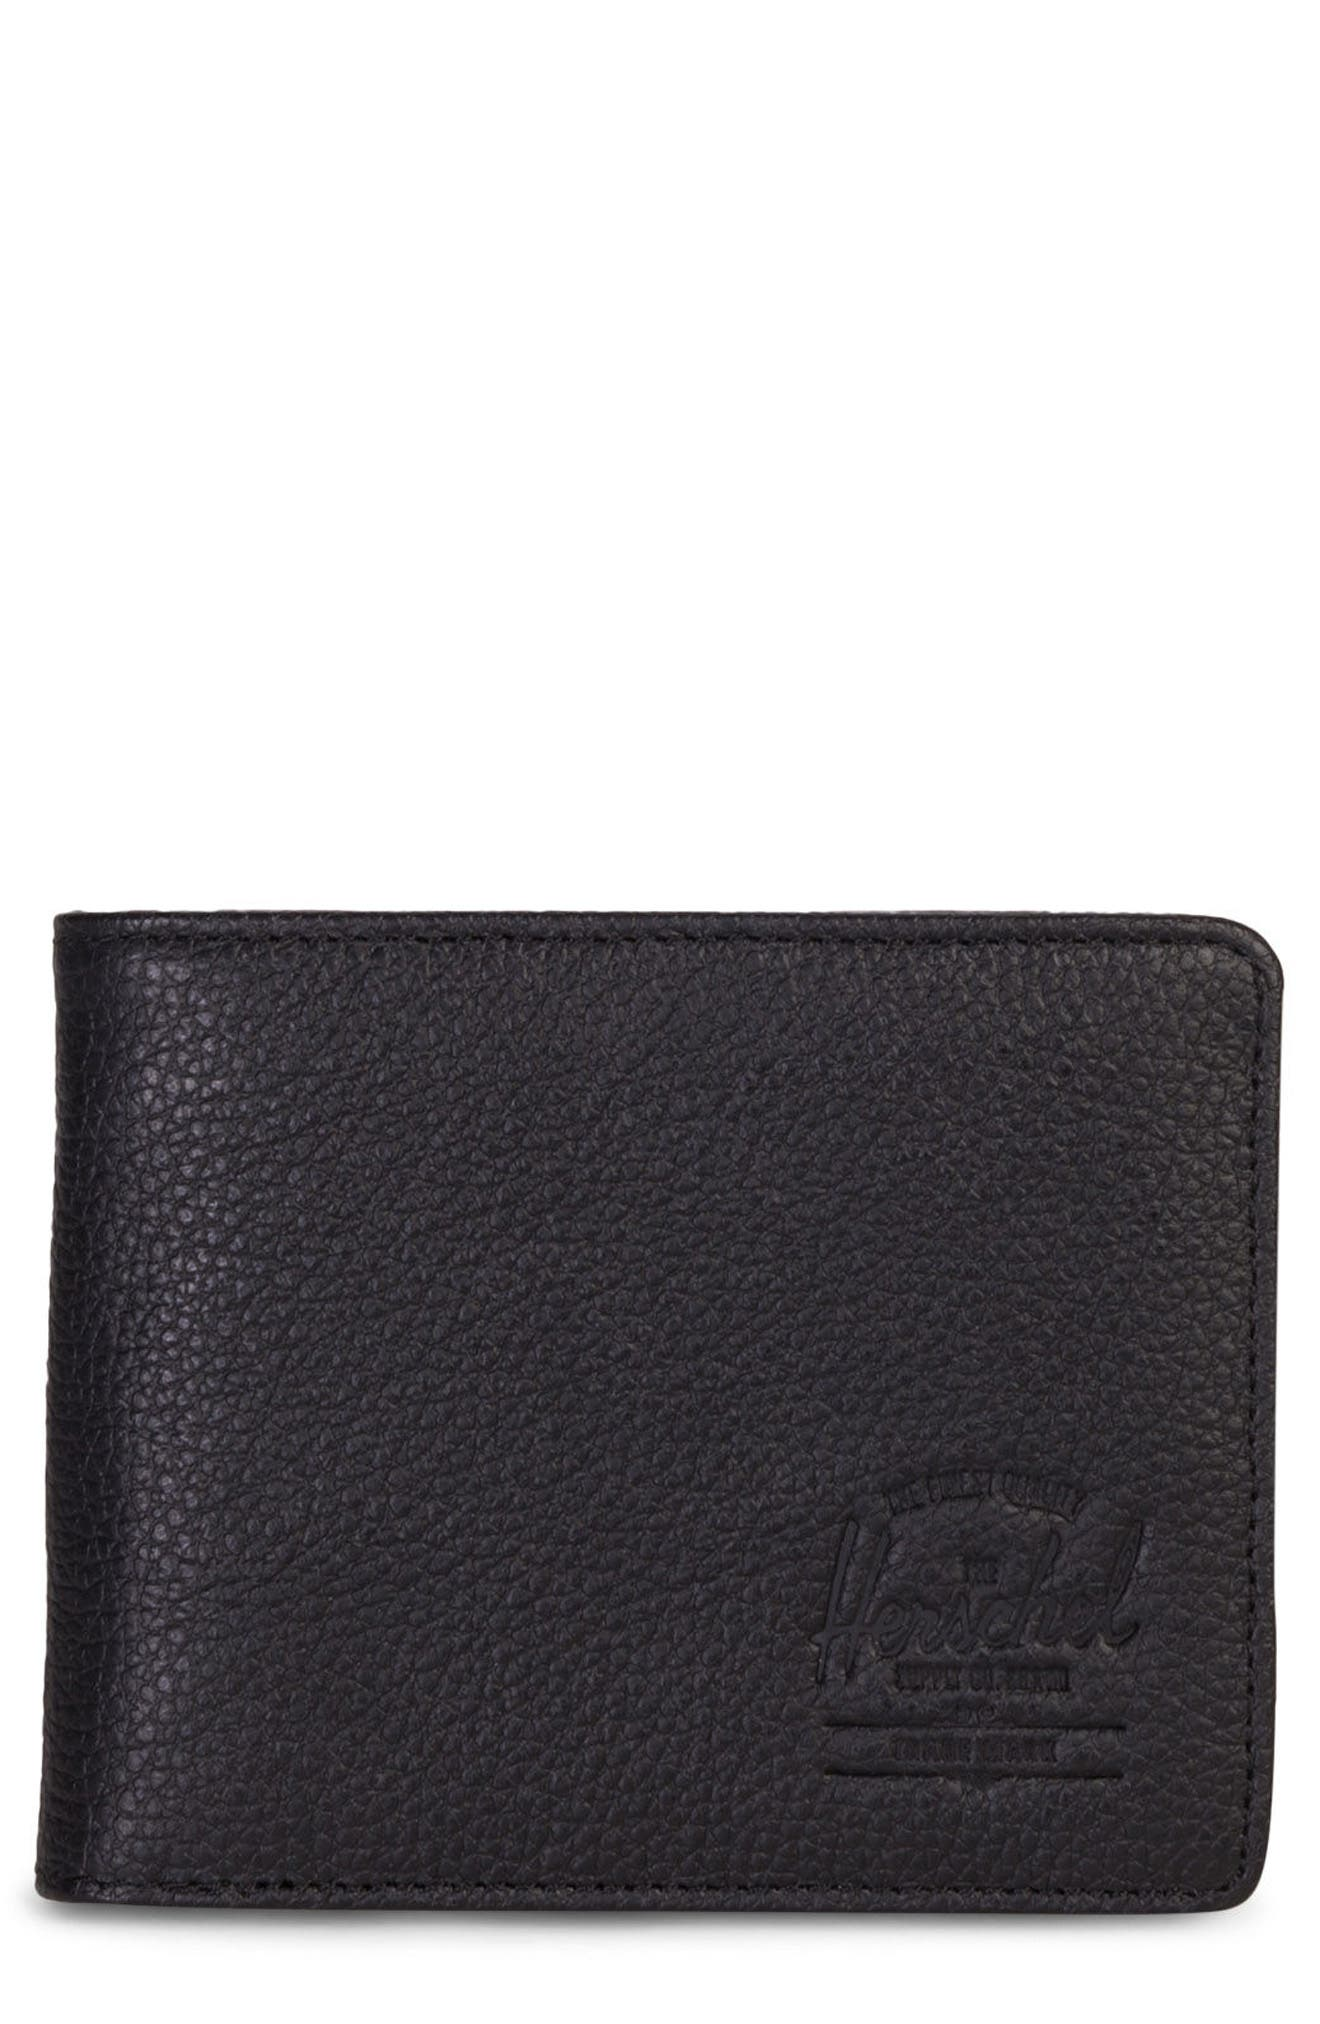 HERSCHEL SUPPLY CO., Hank Leather Wallet, Main thumbnail 1, color, BLACK PEBBLED LEATHER